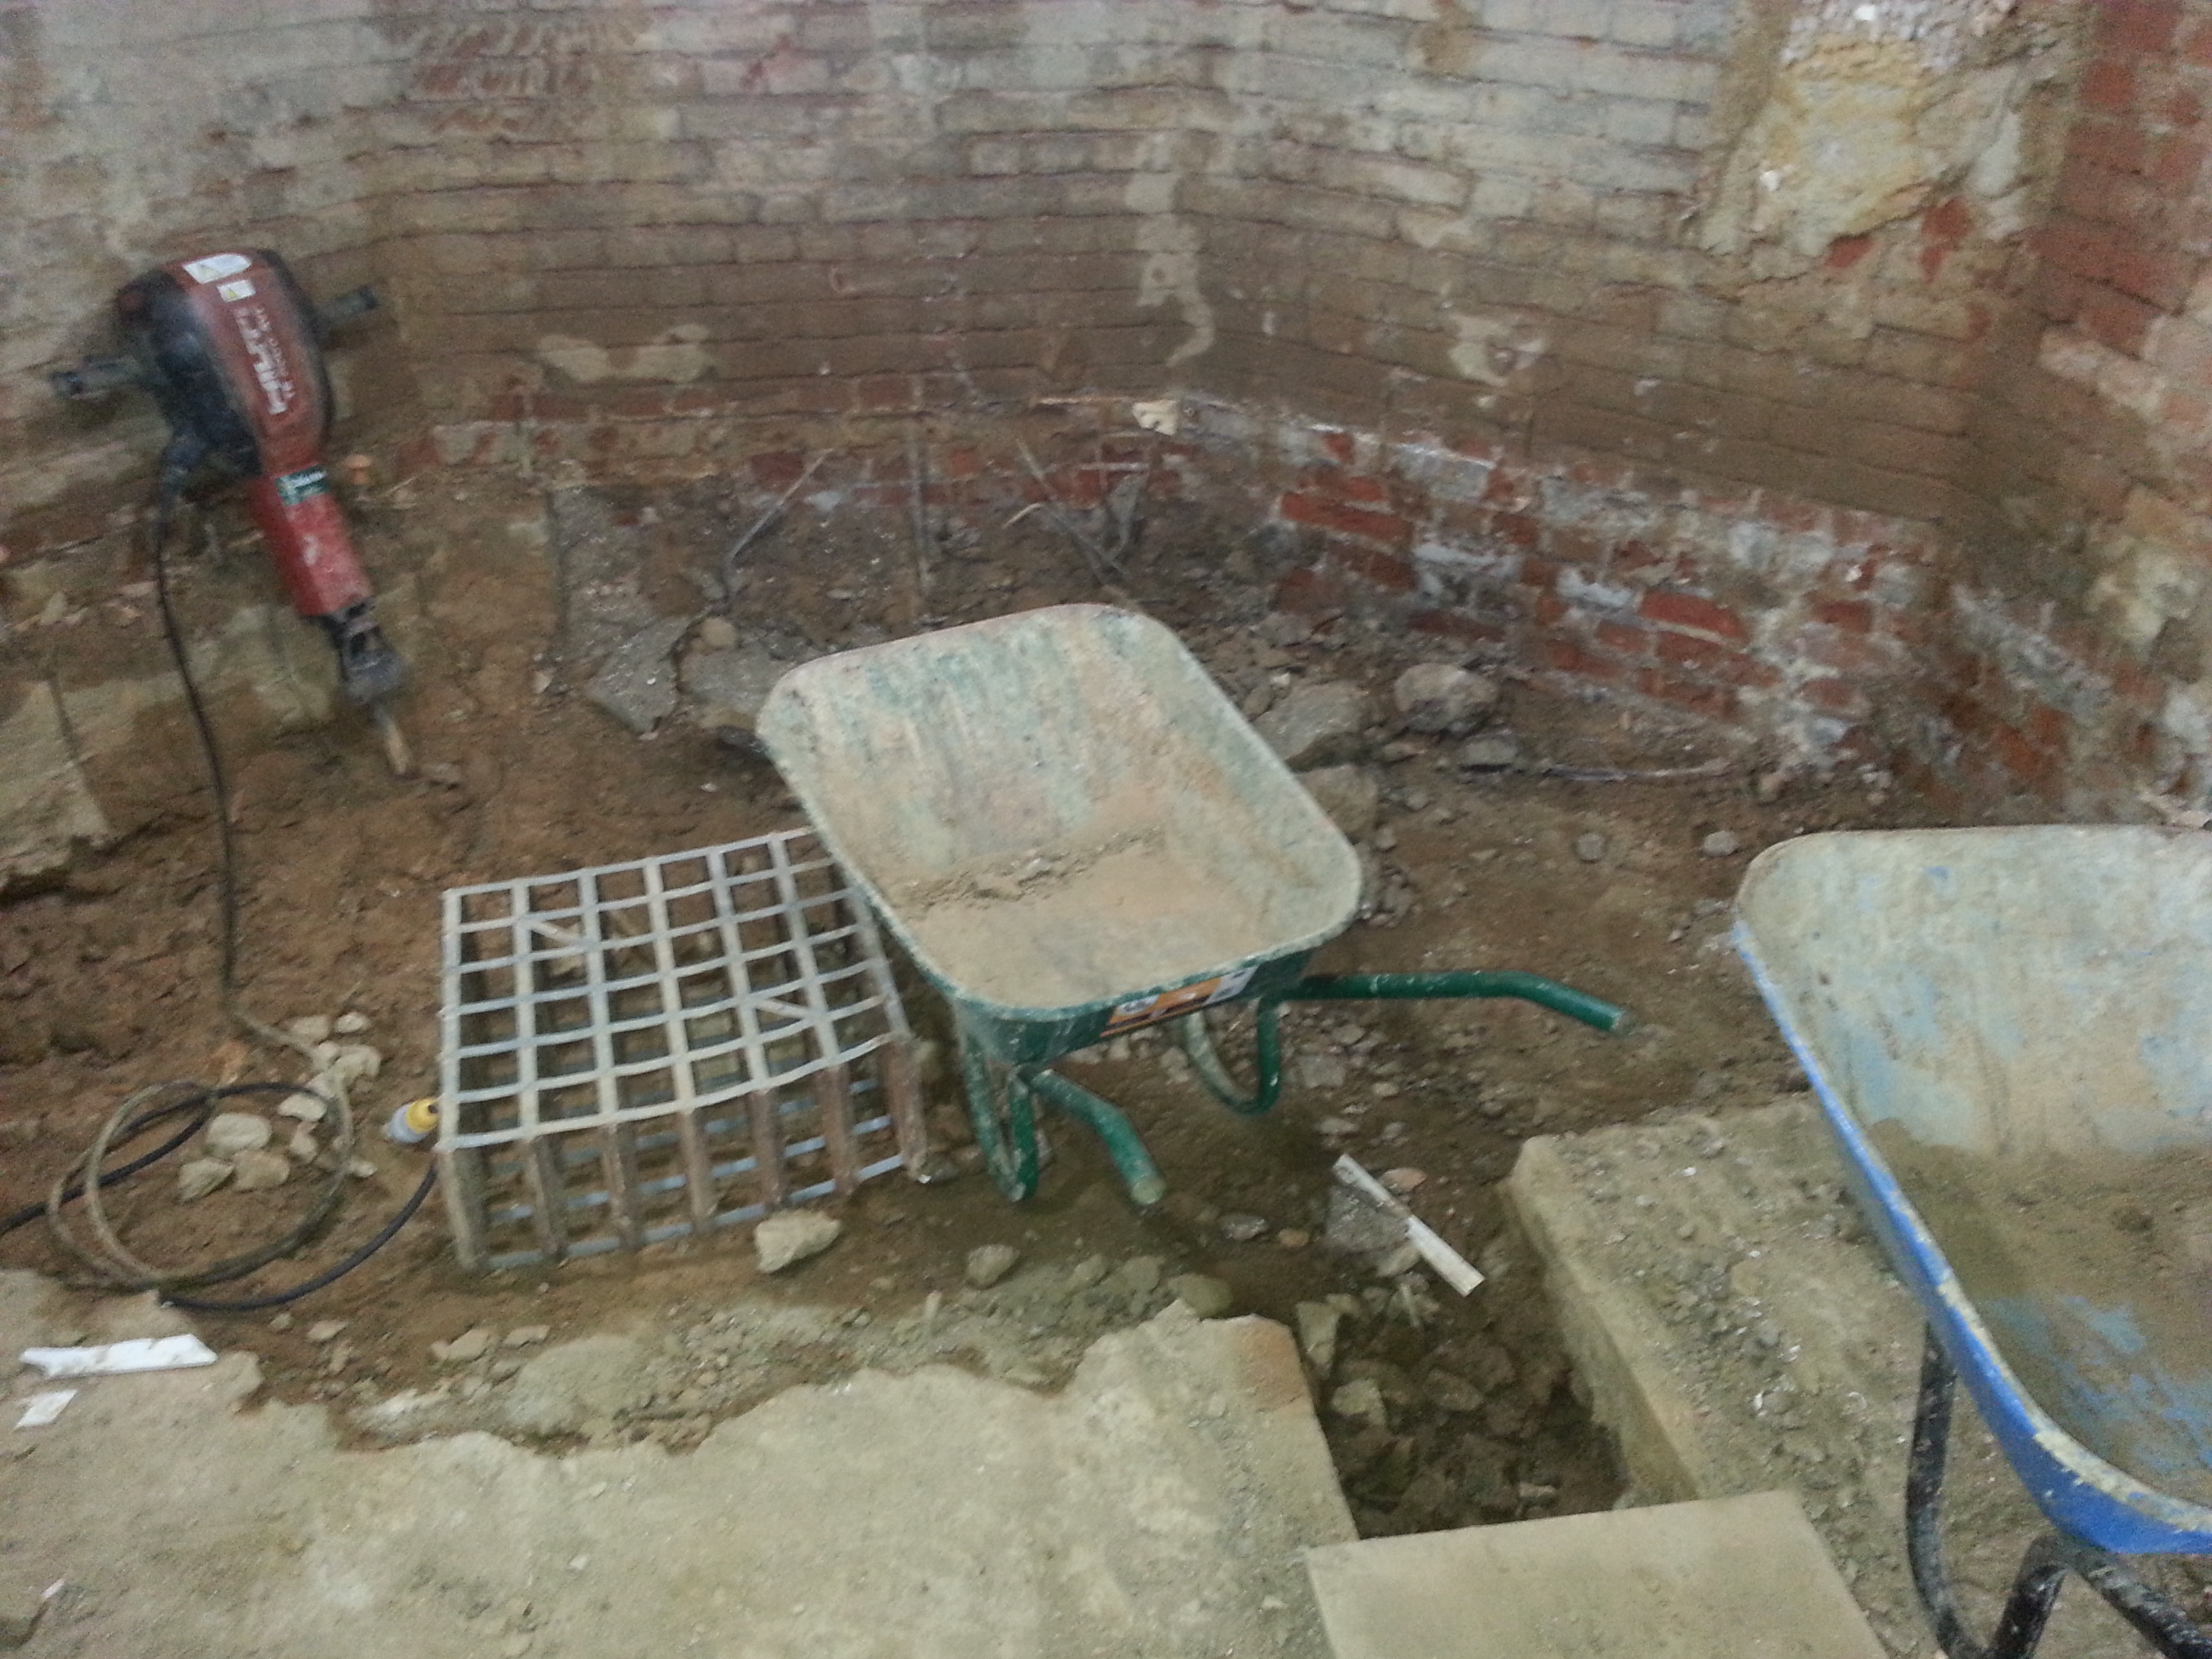 Underground drainage channels leading to sump excavation